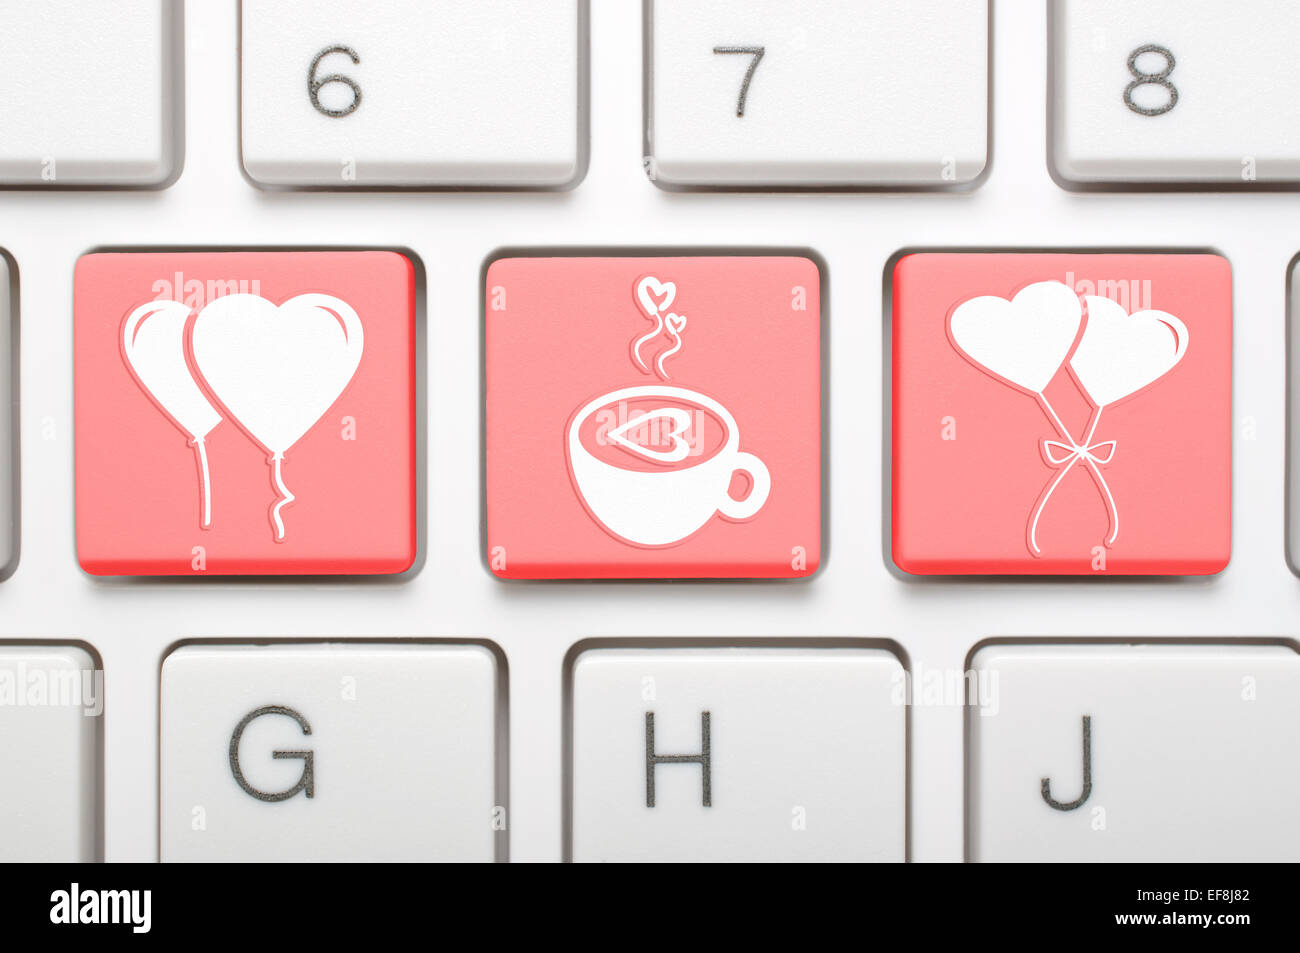 Abstract valentine symbol on keyboard stock photo 78251266 alamy abstract valentine symbol on keyboard buycottarizona Choice Image